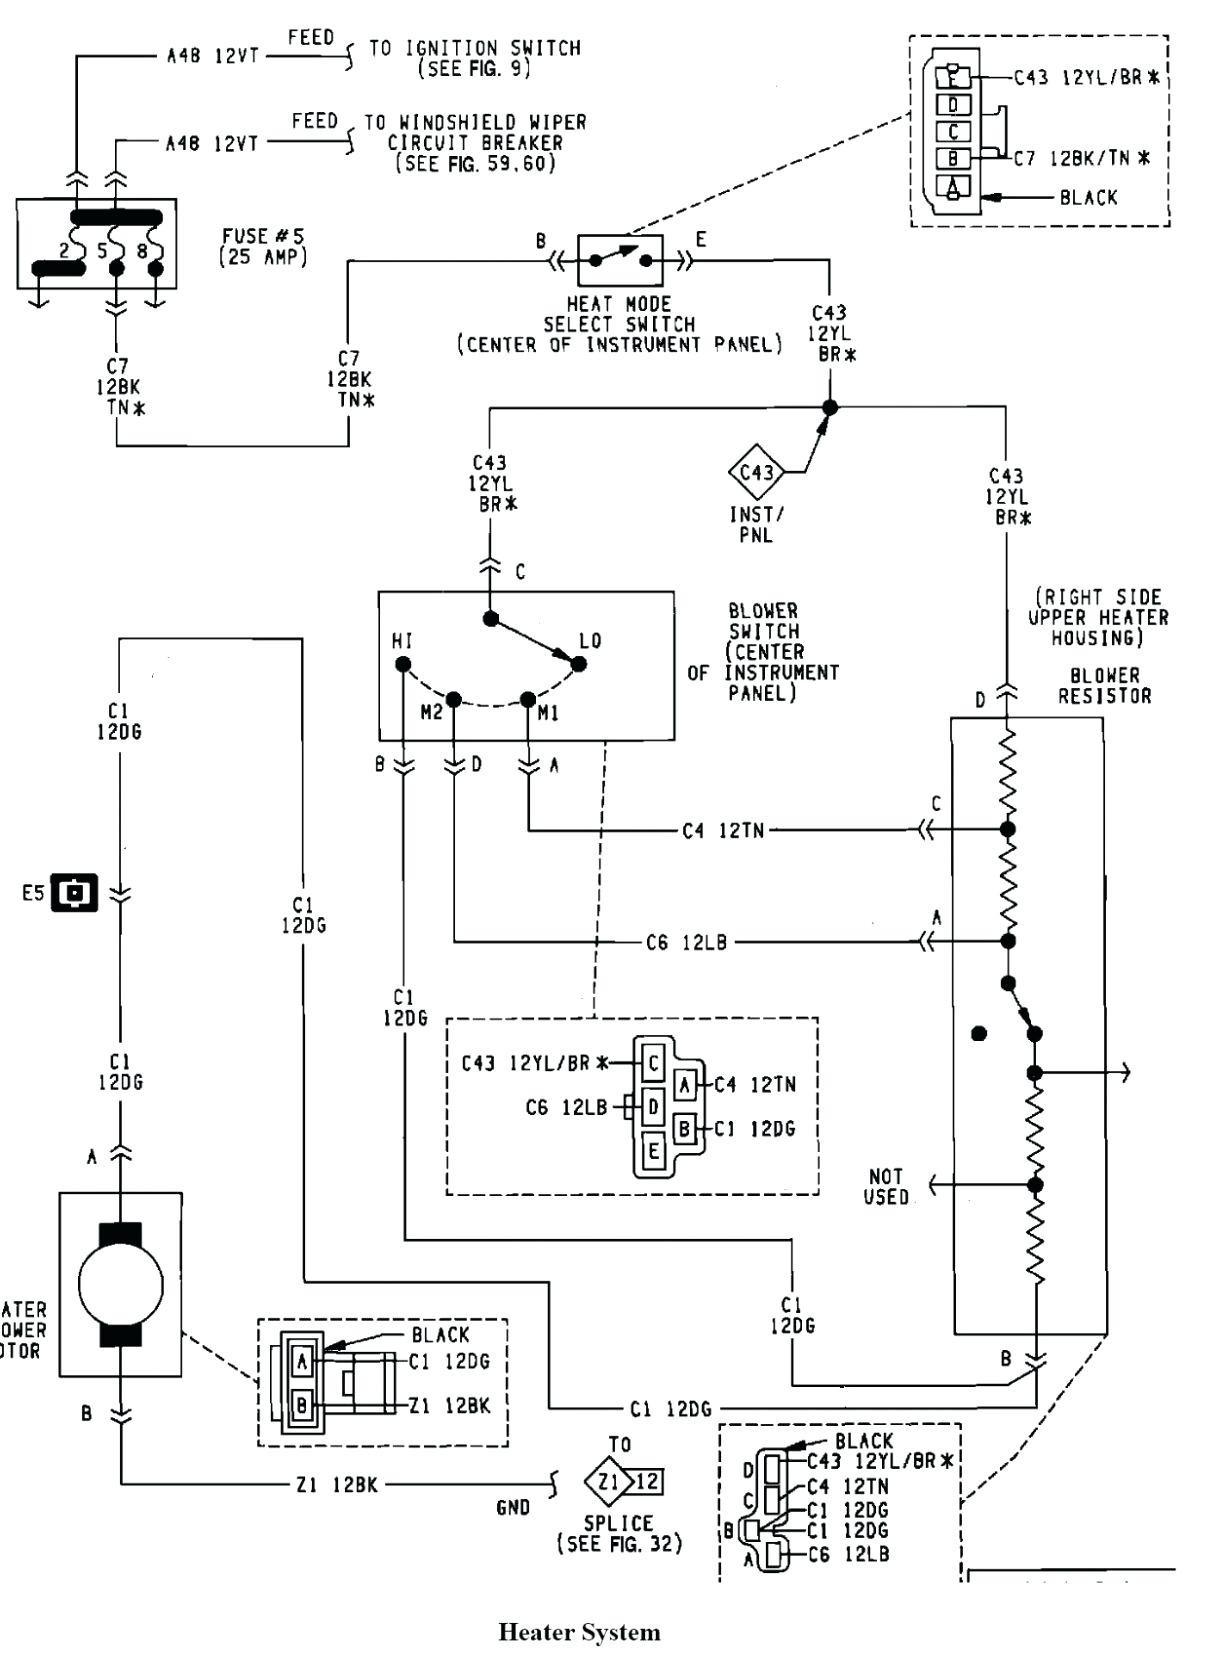 Jeep Wrangler Jk Headlight Wiring Diagram New Jeep Tj Wiring Harness  Diagram 2005 Jeep Wrangler Engine